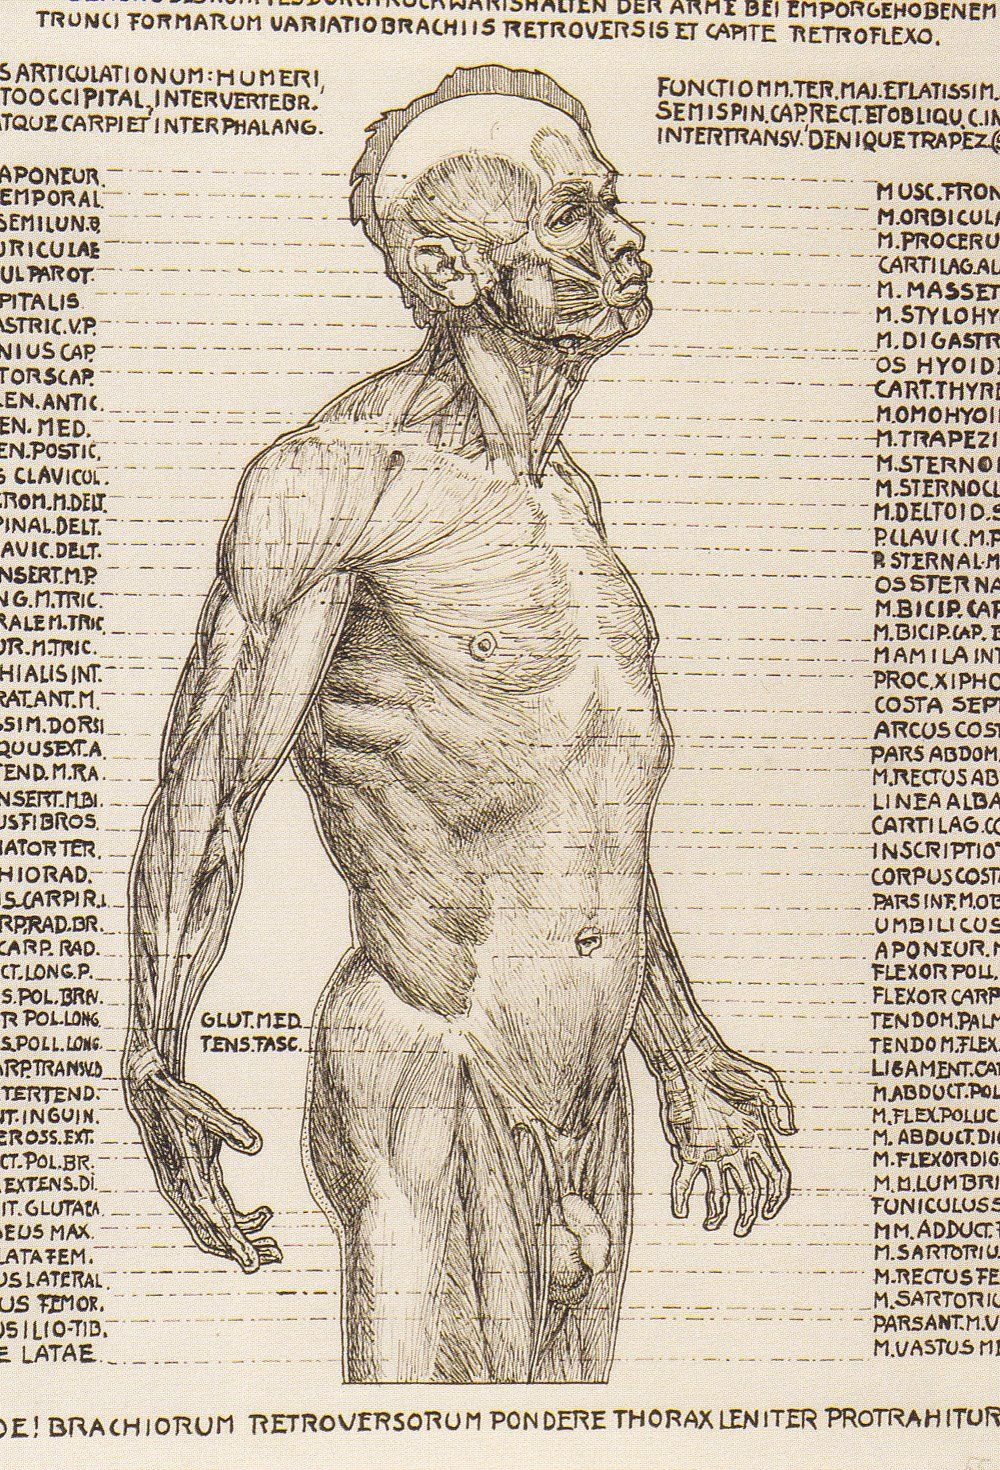 by Herman Heller book containing these and tons of other anatomic ...